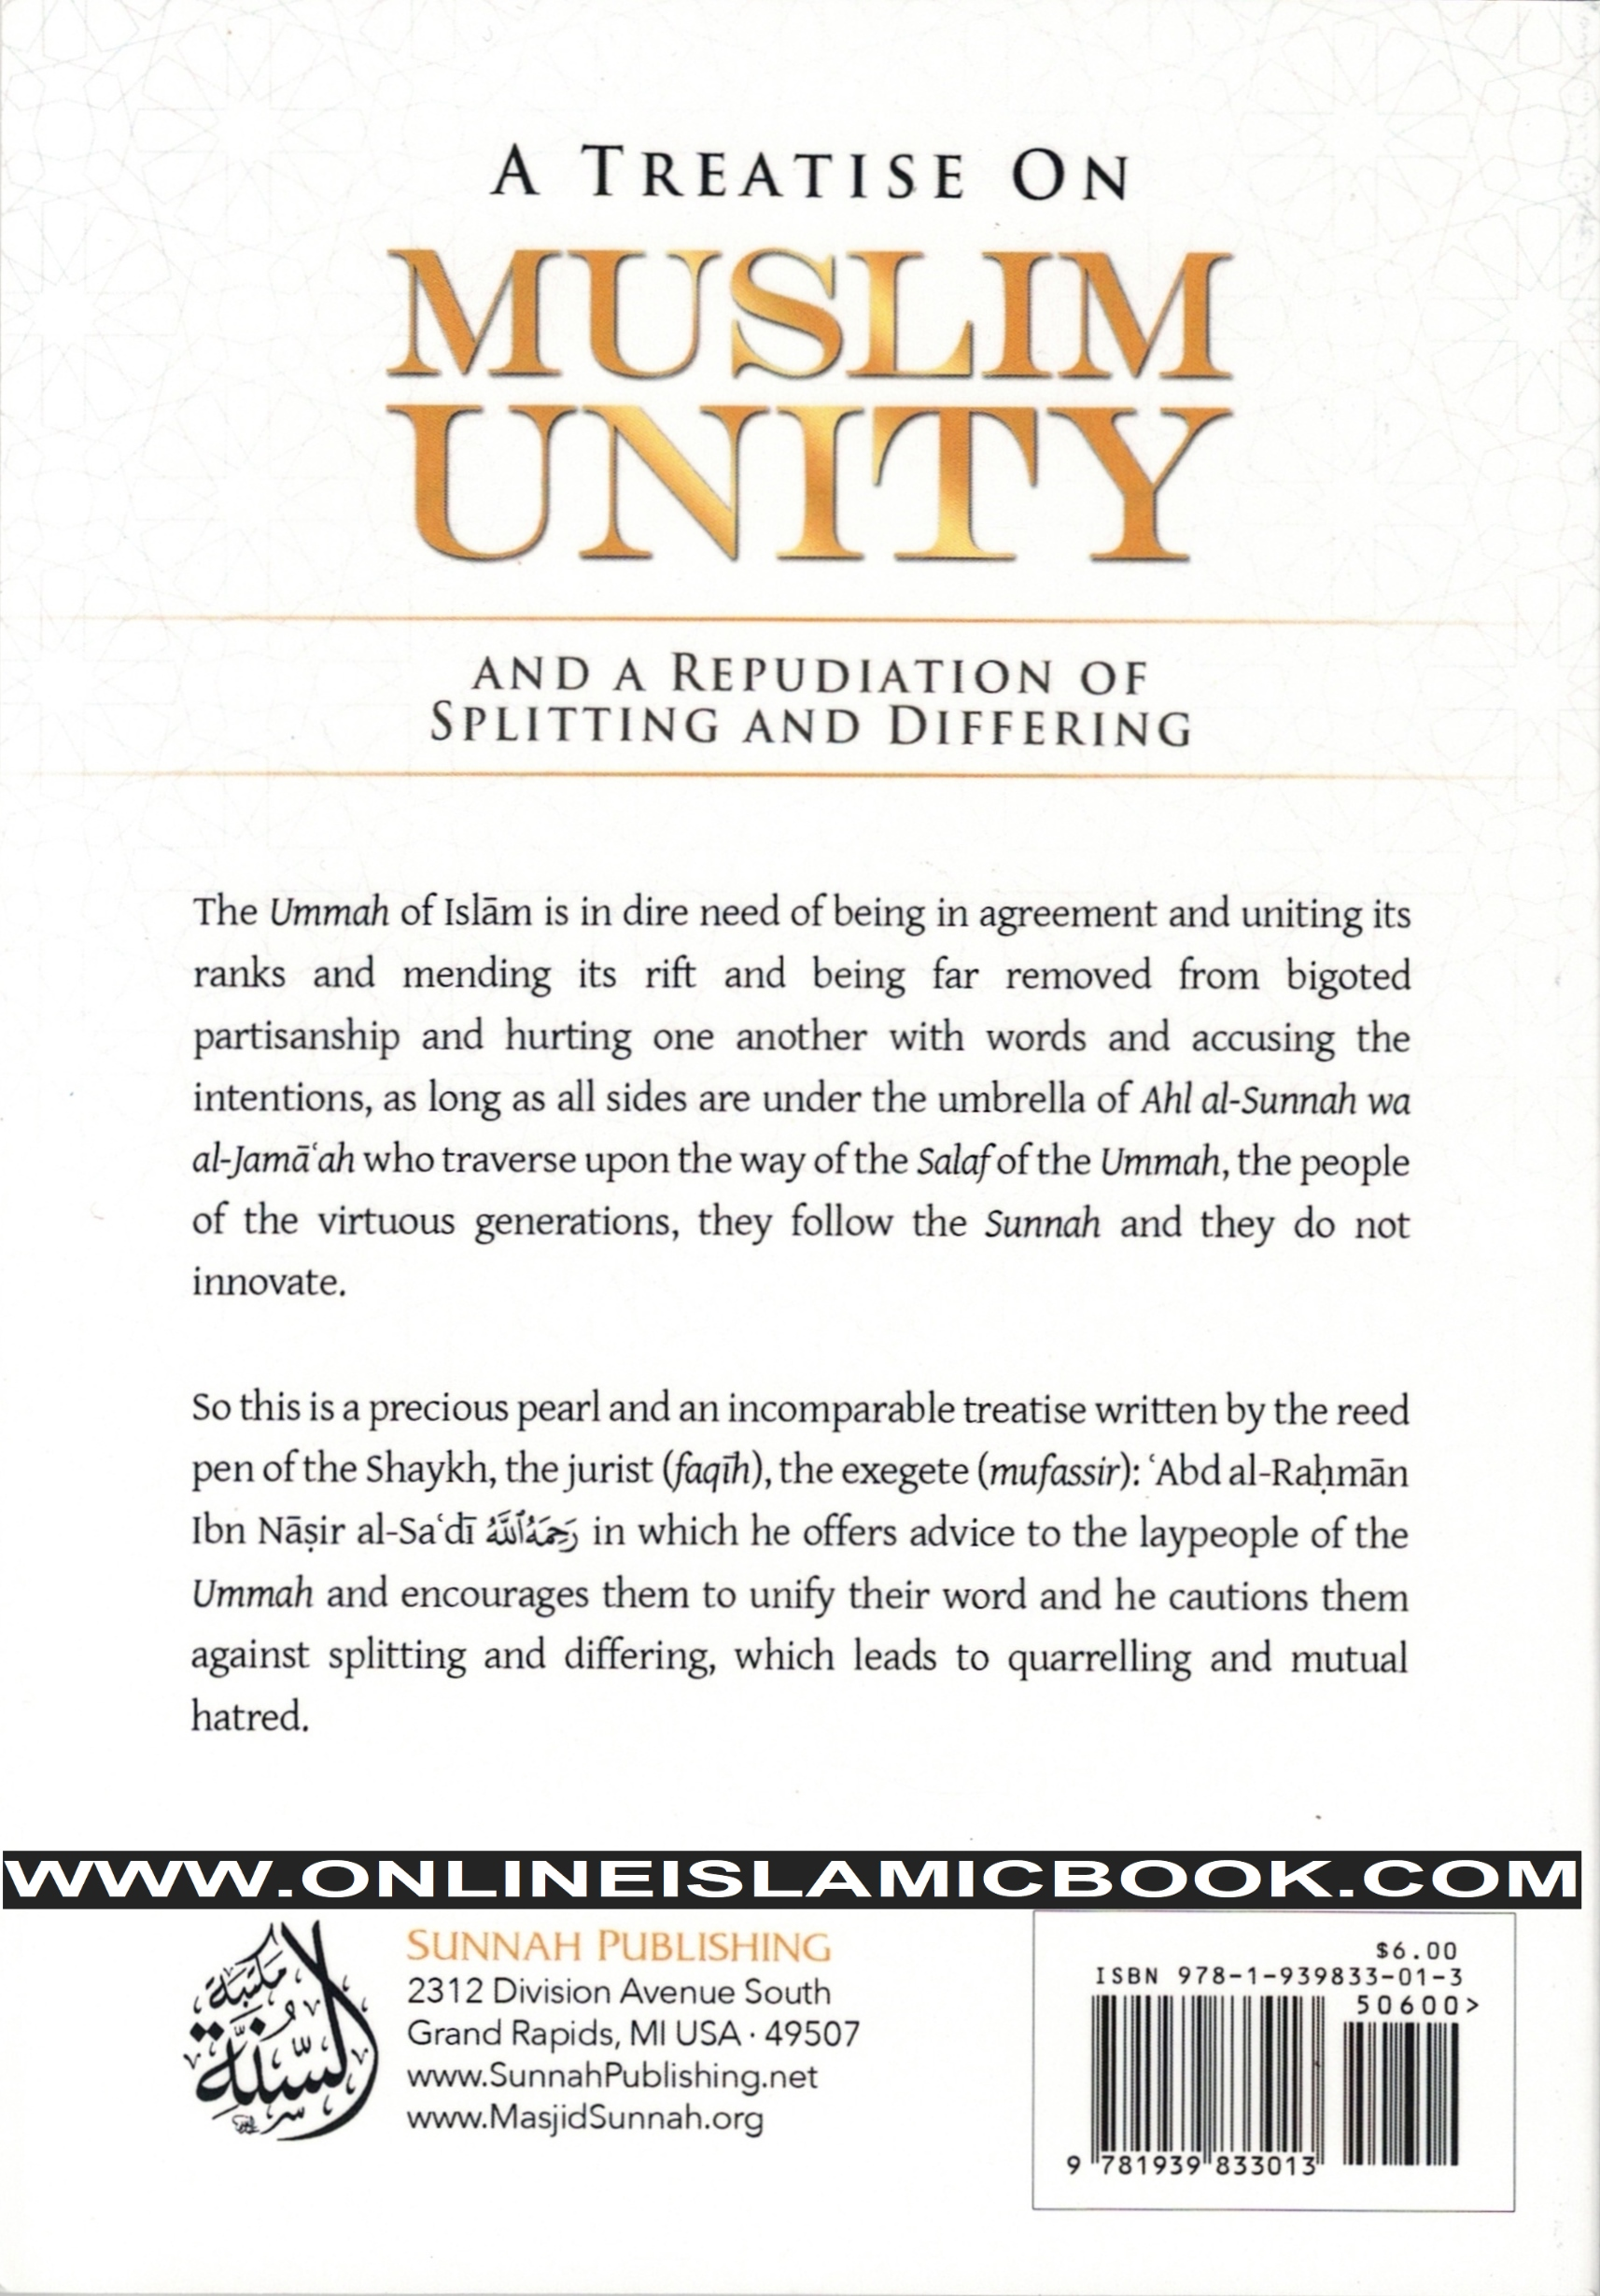 a-treatise-on-muslim-unity-and-a-repudiation-of-splitting-and-differing-2-.jpg